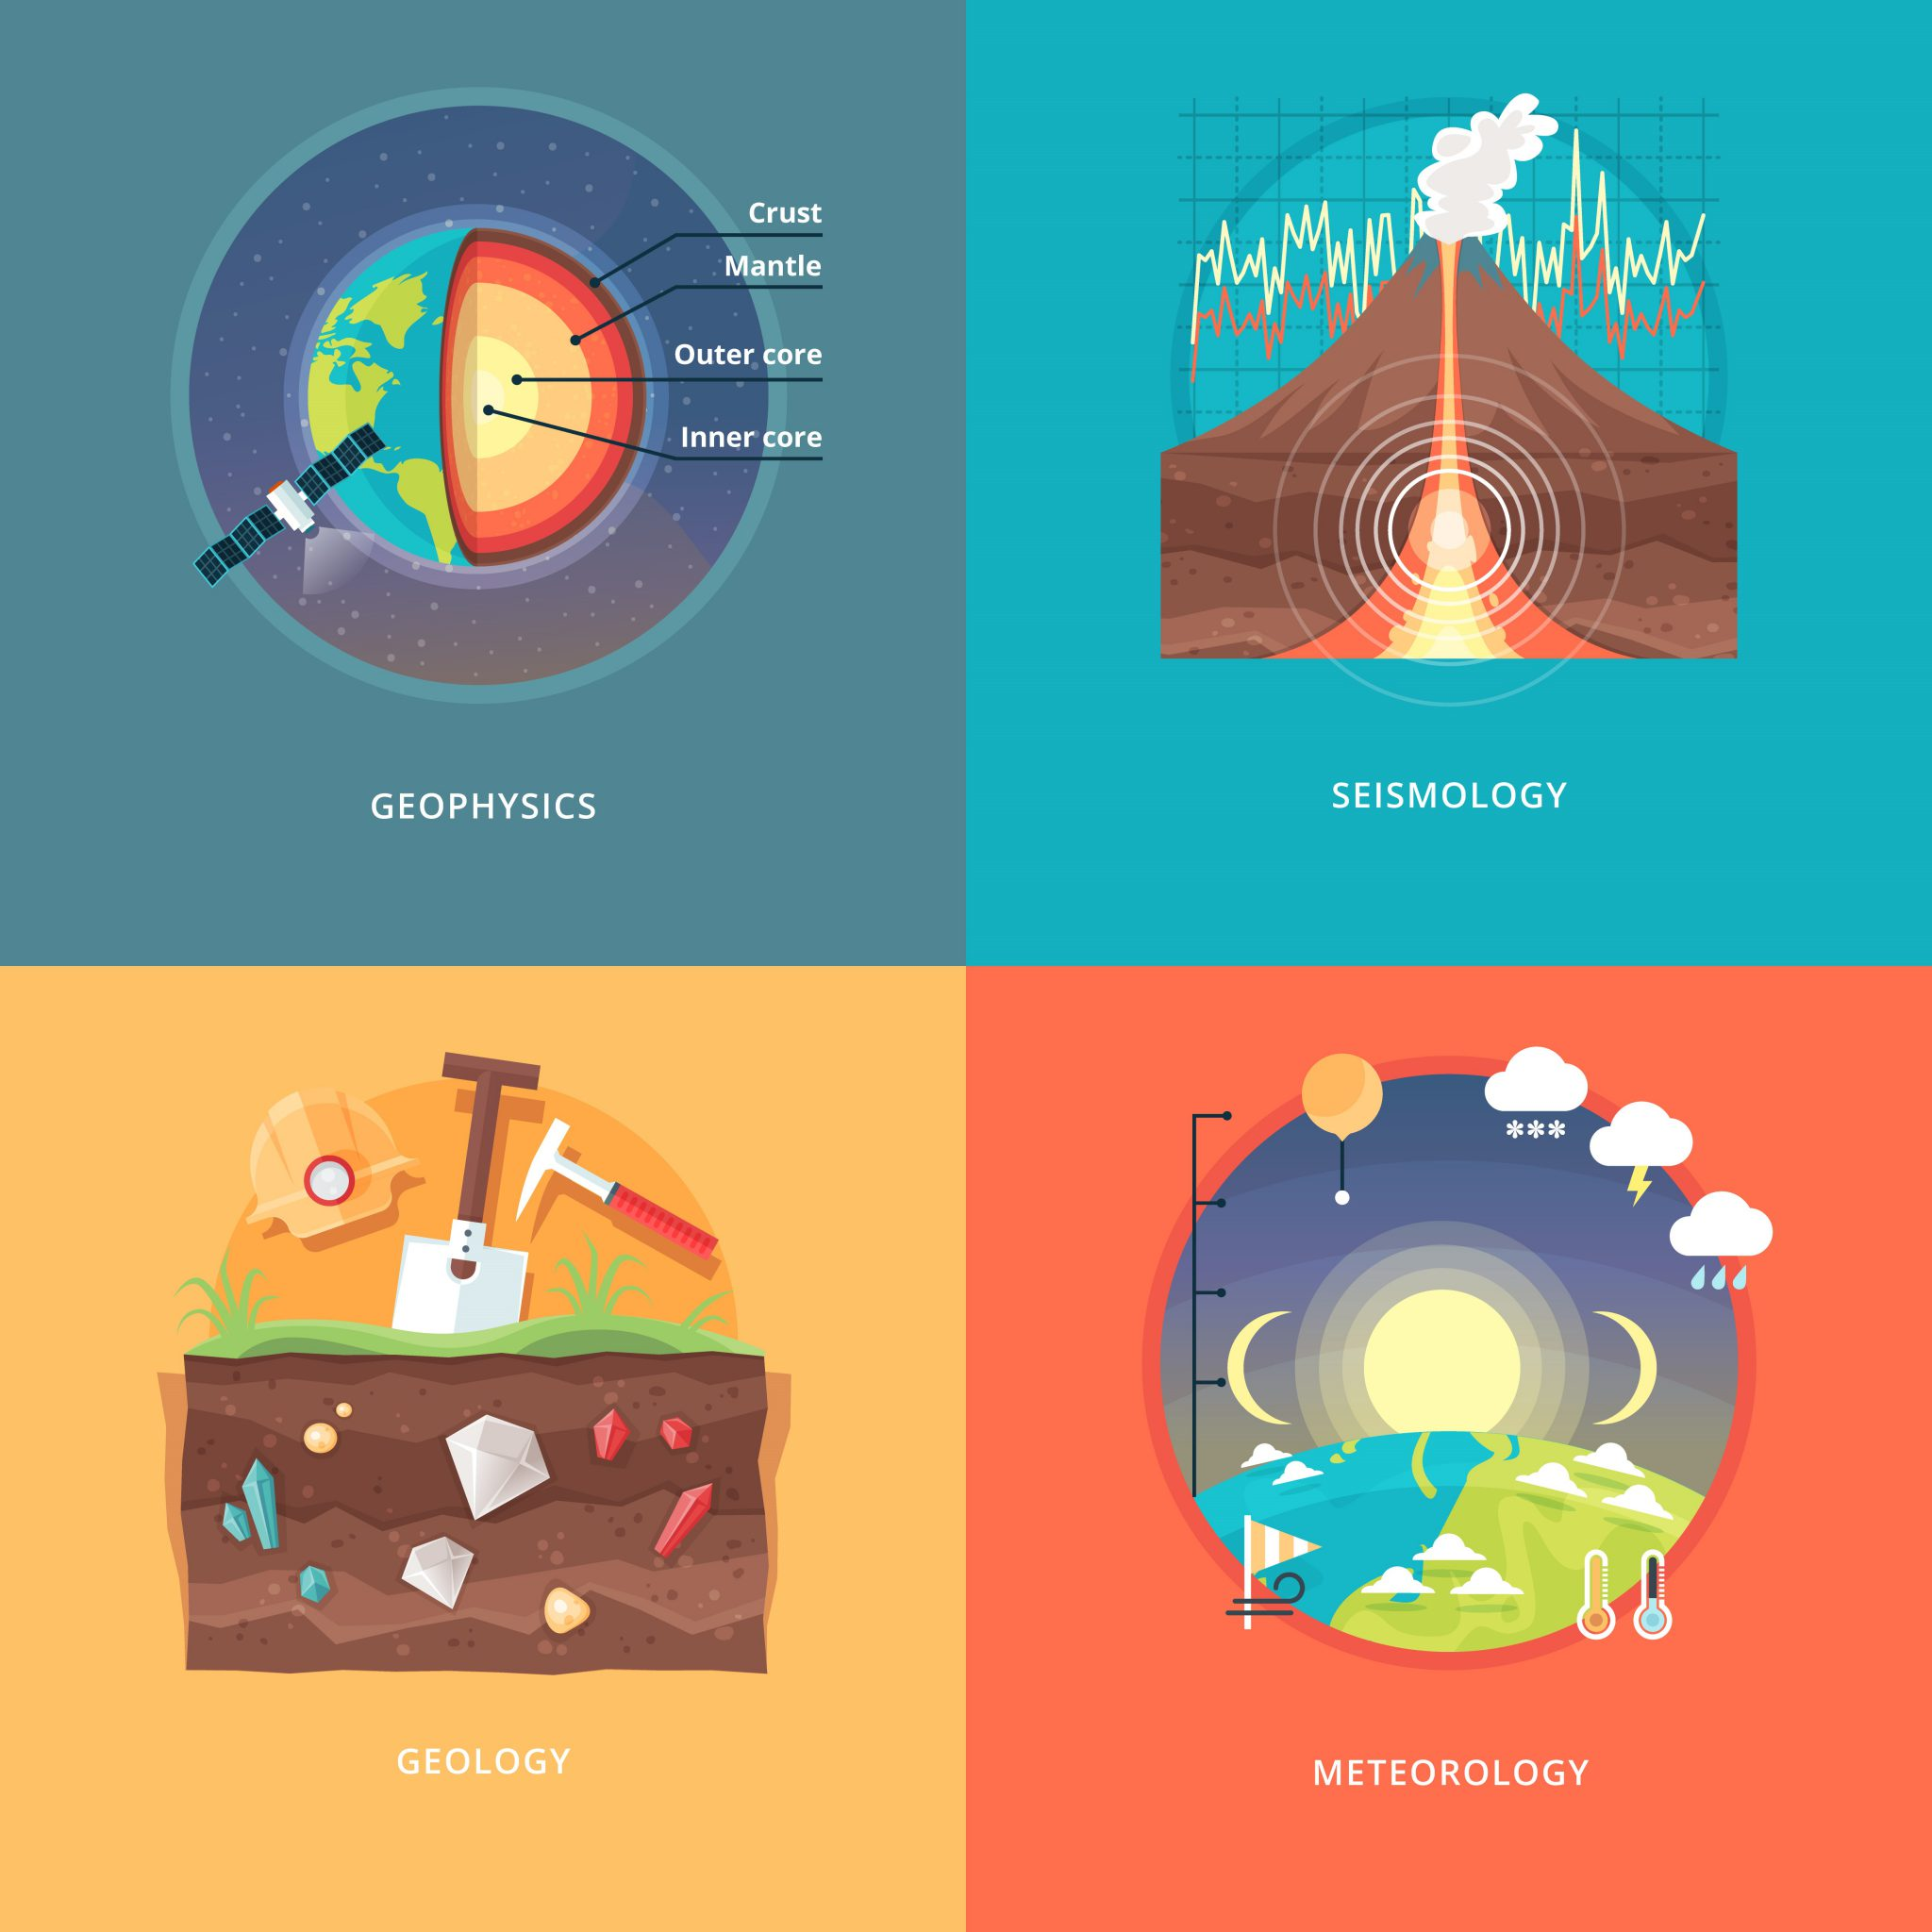 Education and science concept illustrations. Geophysics, seismology, geology, meteorology . Science of Earth and planet structure. Knowledge of athmospherical phenomena. Flat vector design banner.